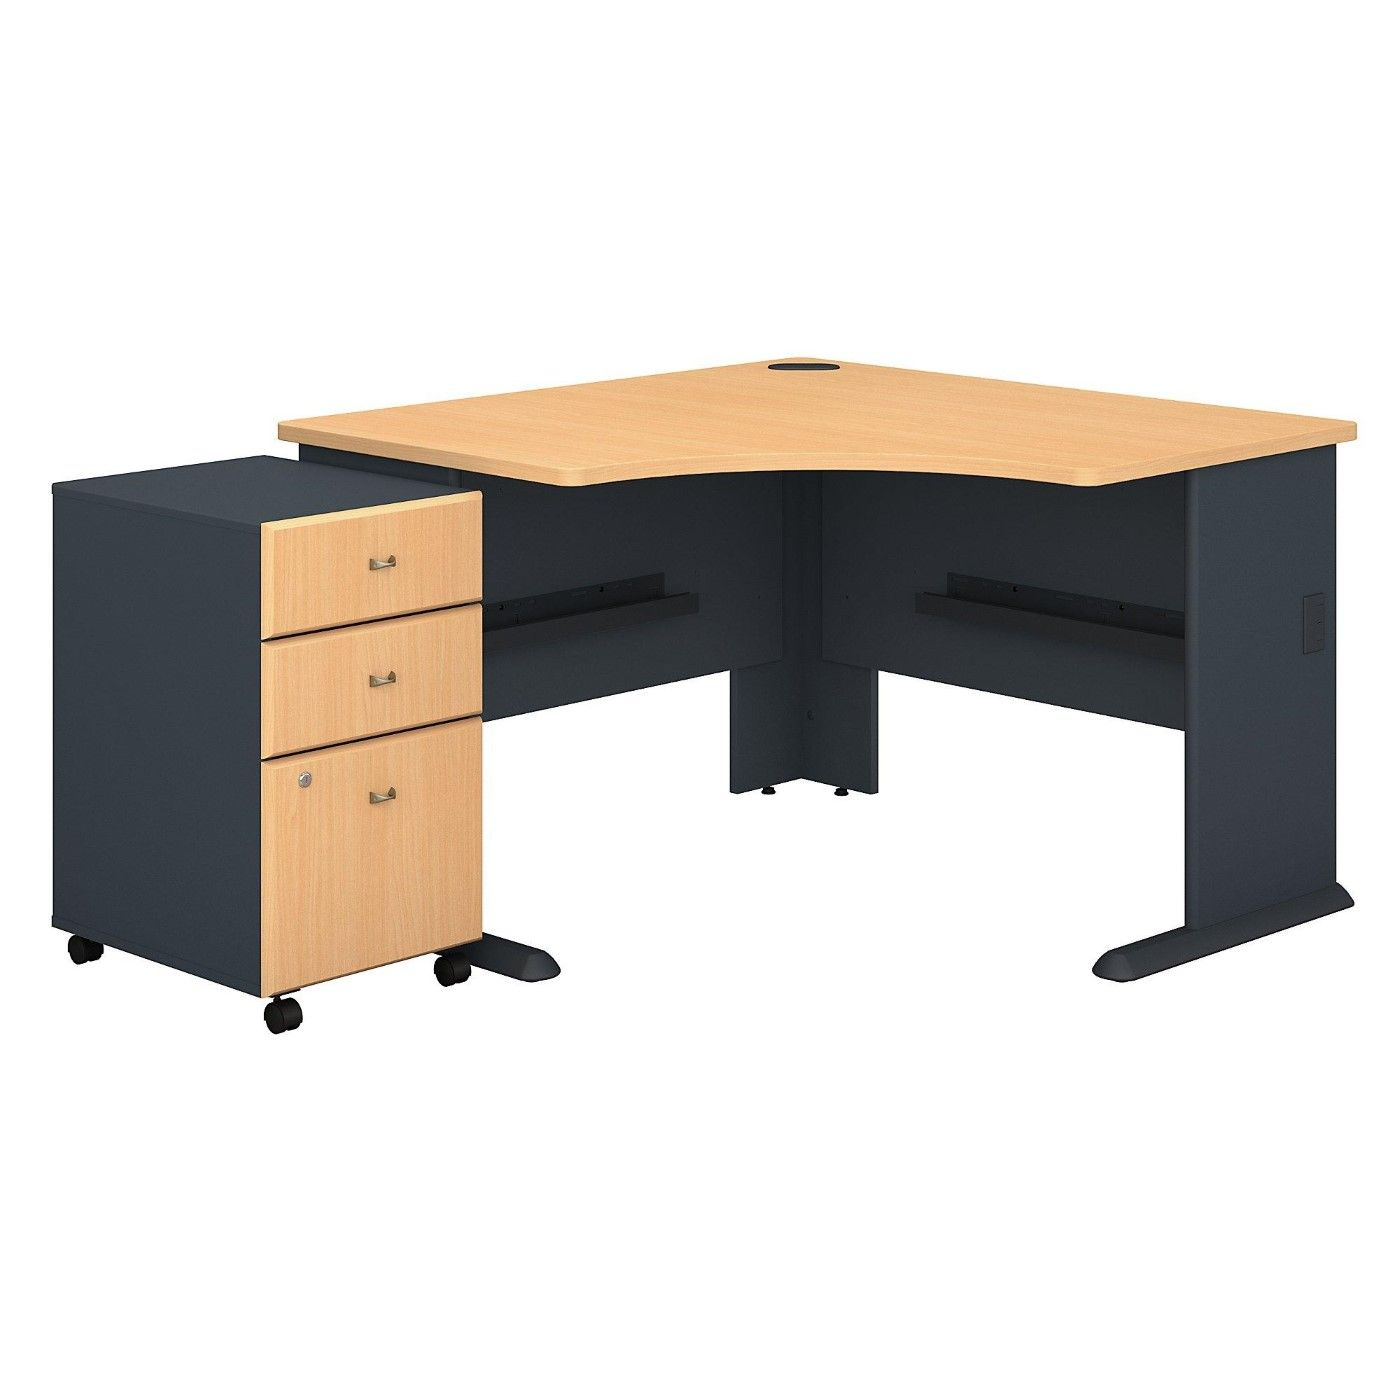 <font color=#c60><b>BUSH BUSINESS FURNITURE SERIES A 48W CORNER DESK WITH MOBILE FILE CABINET. FREE SHIPPING</font></b>